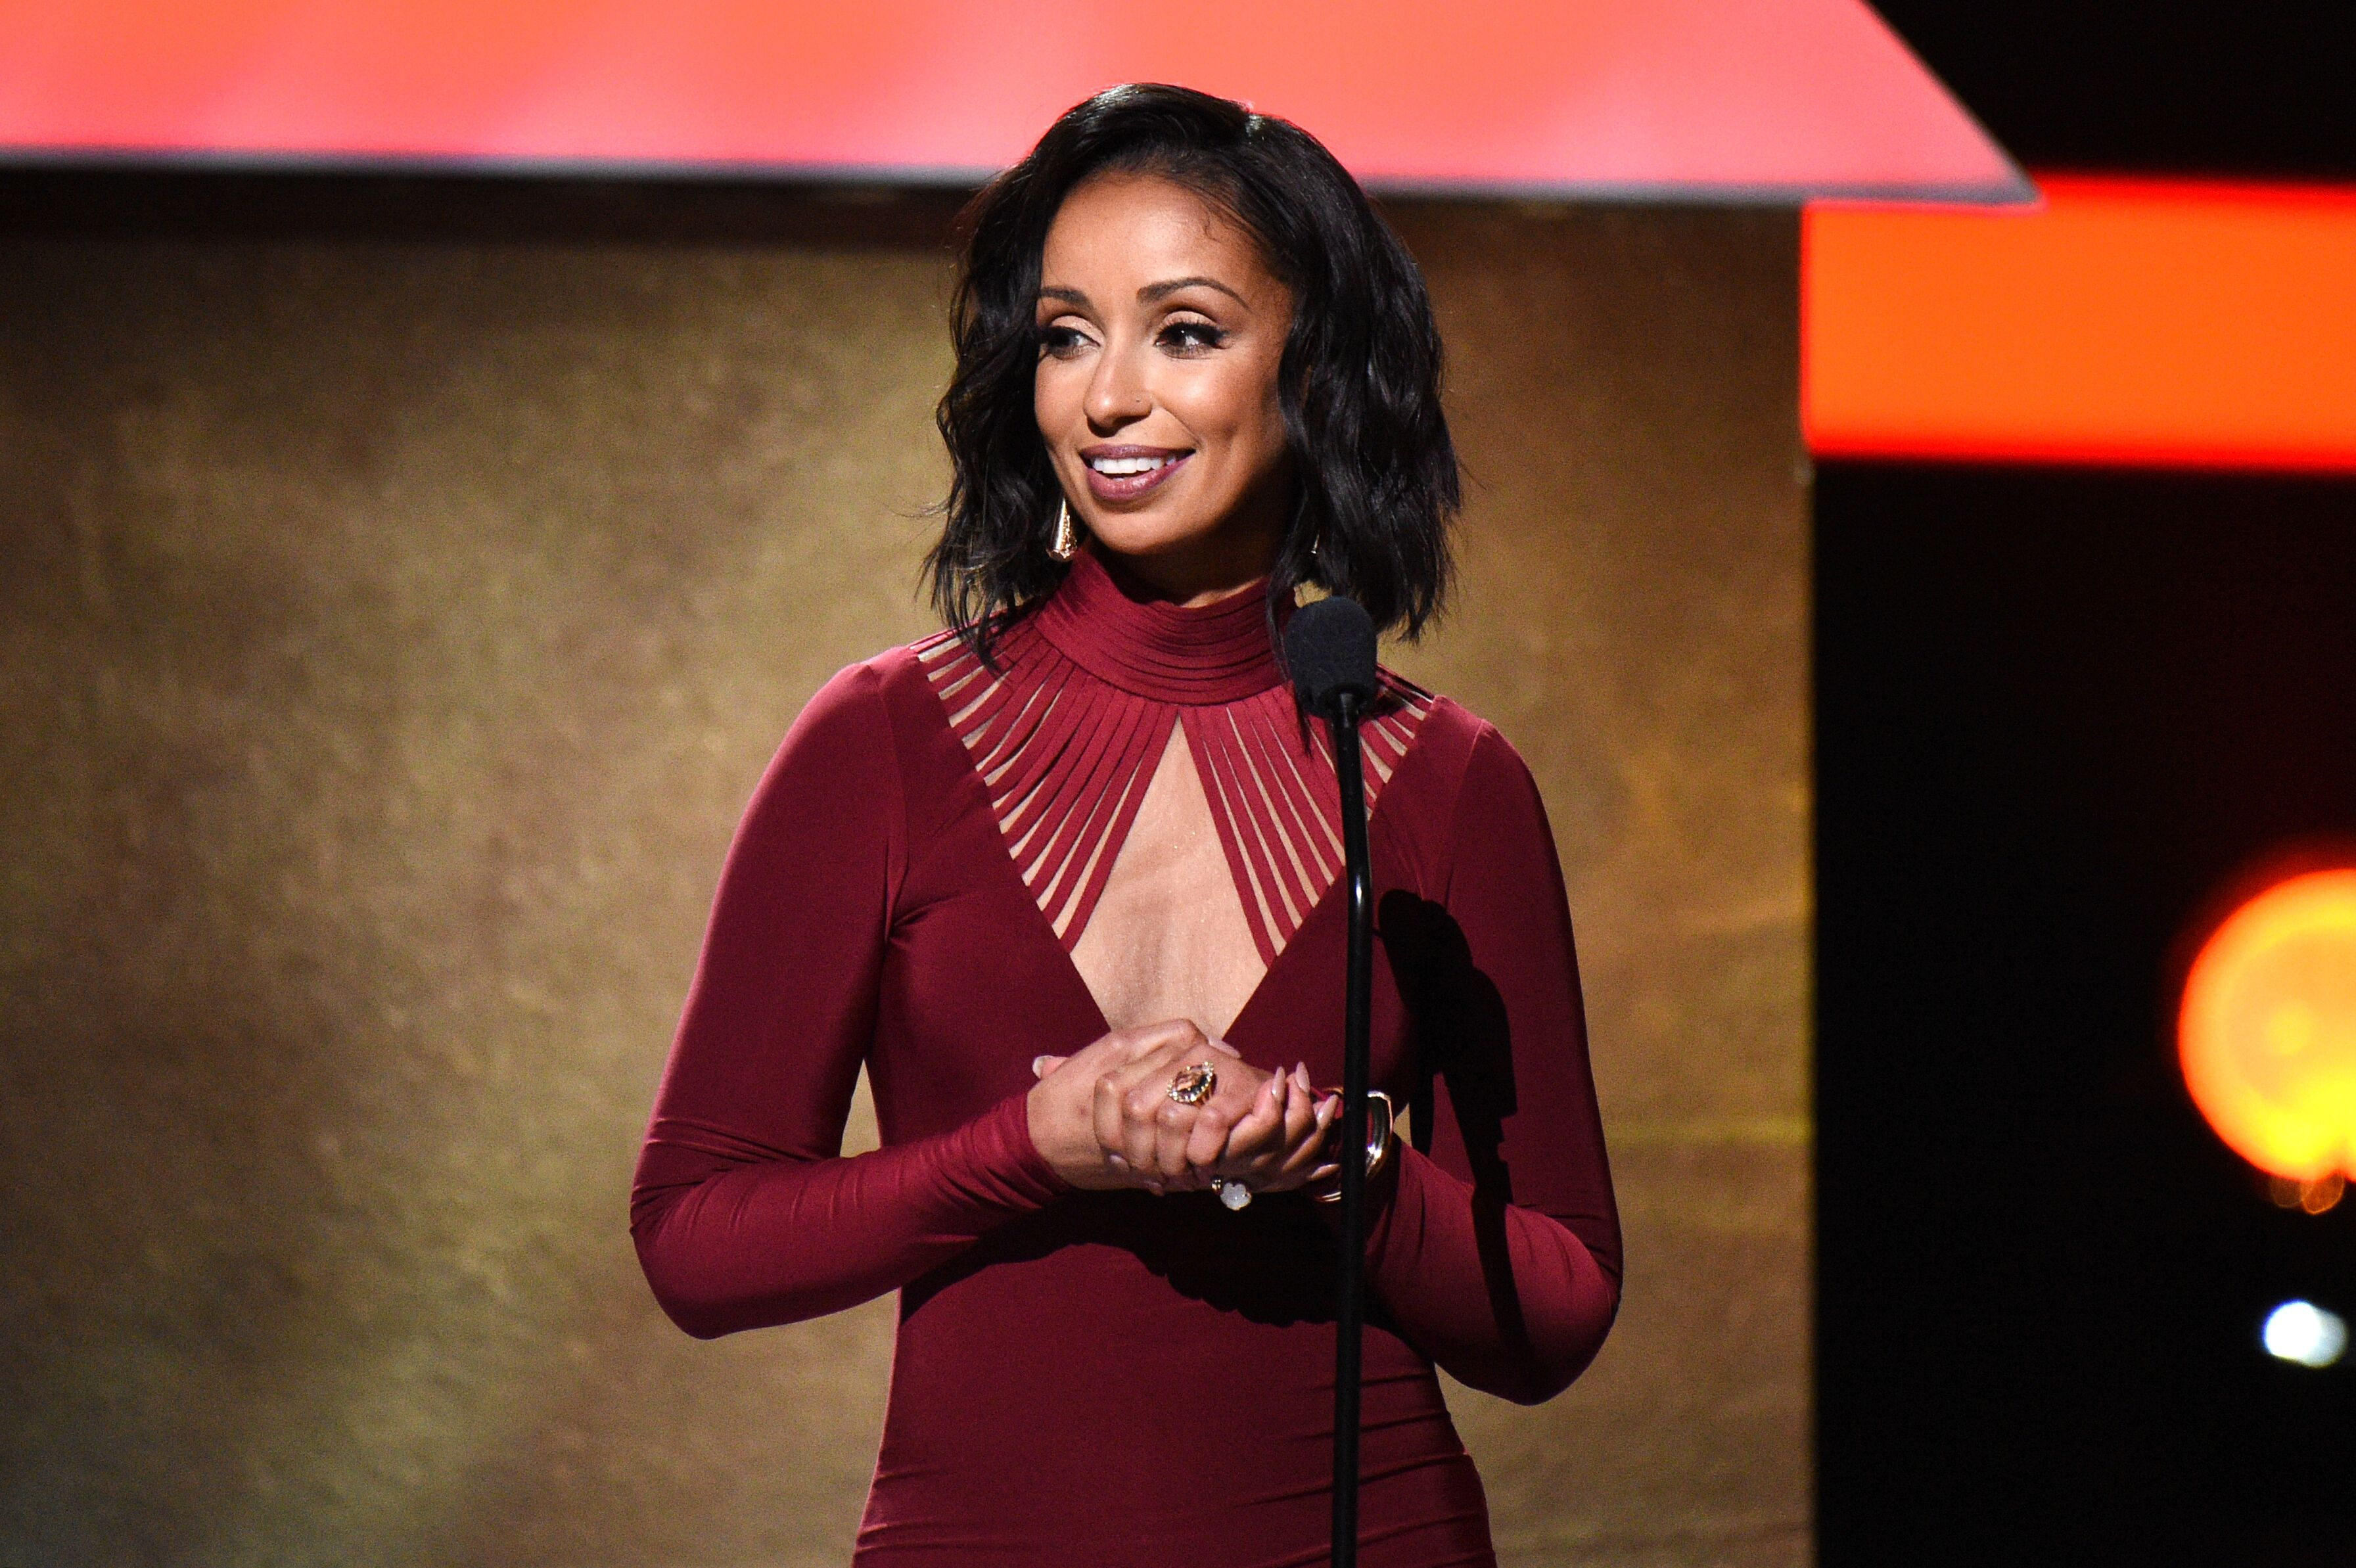 Singer Mya onstage at the Premiere Ceremony during The 59th GRAMMY Awards at Microsoft Theater on February 12, 2017 in Los Angeles, California | Photo: Getty Images